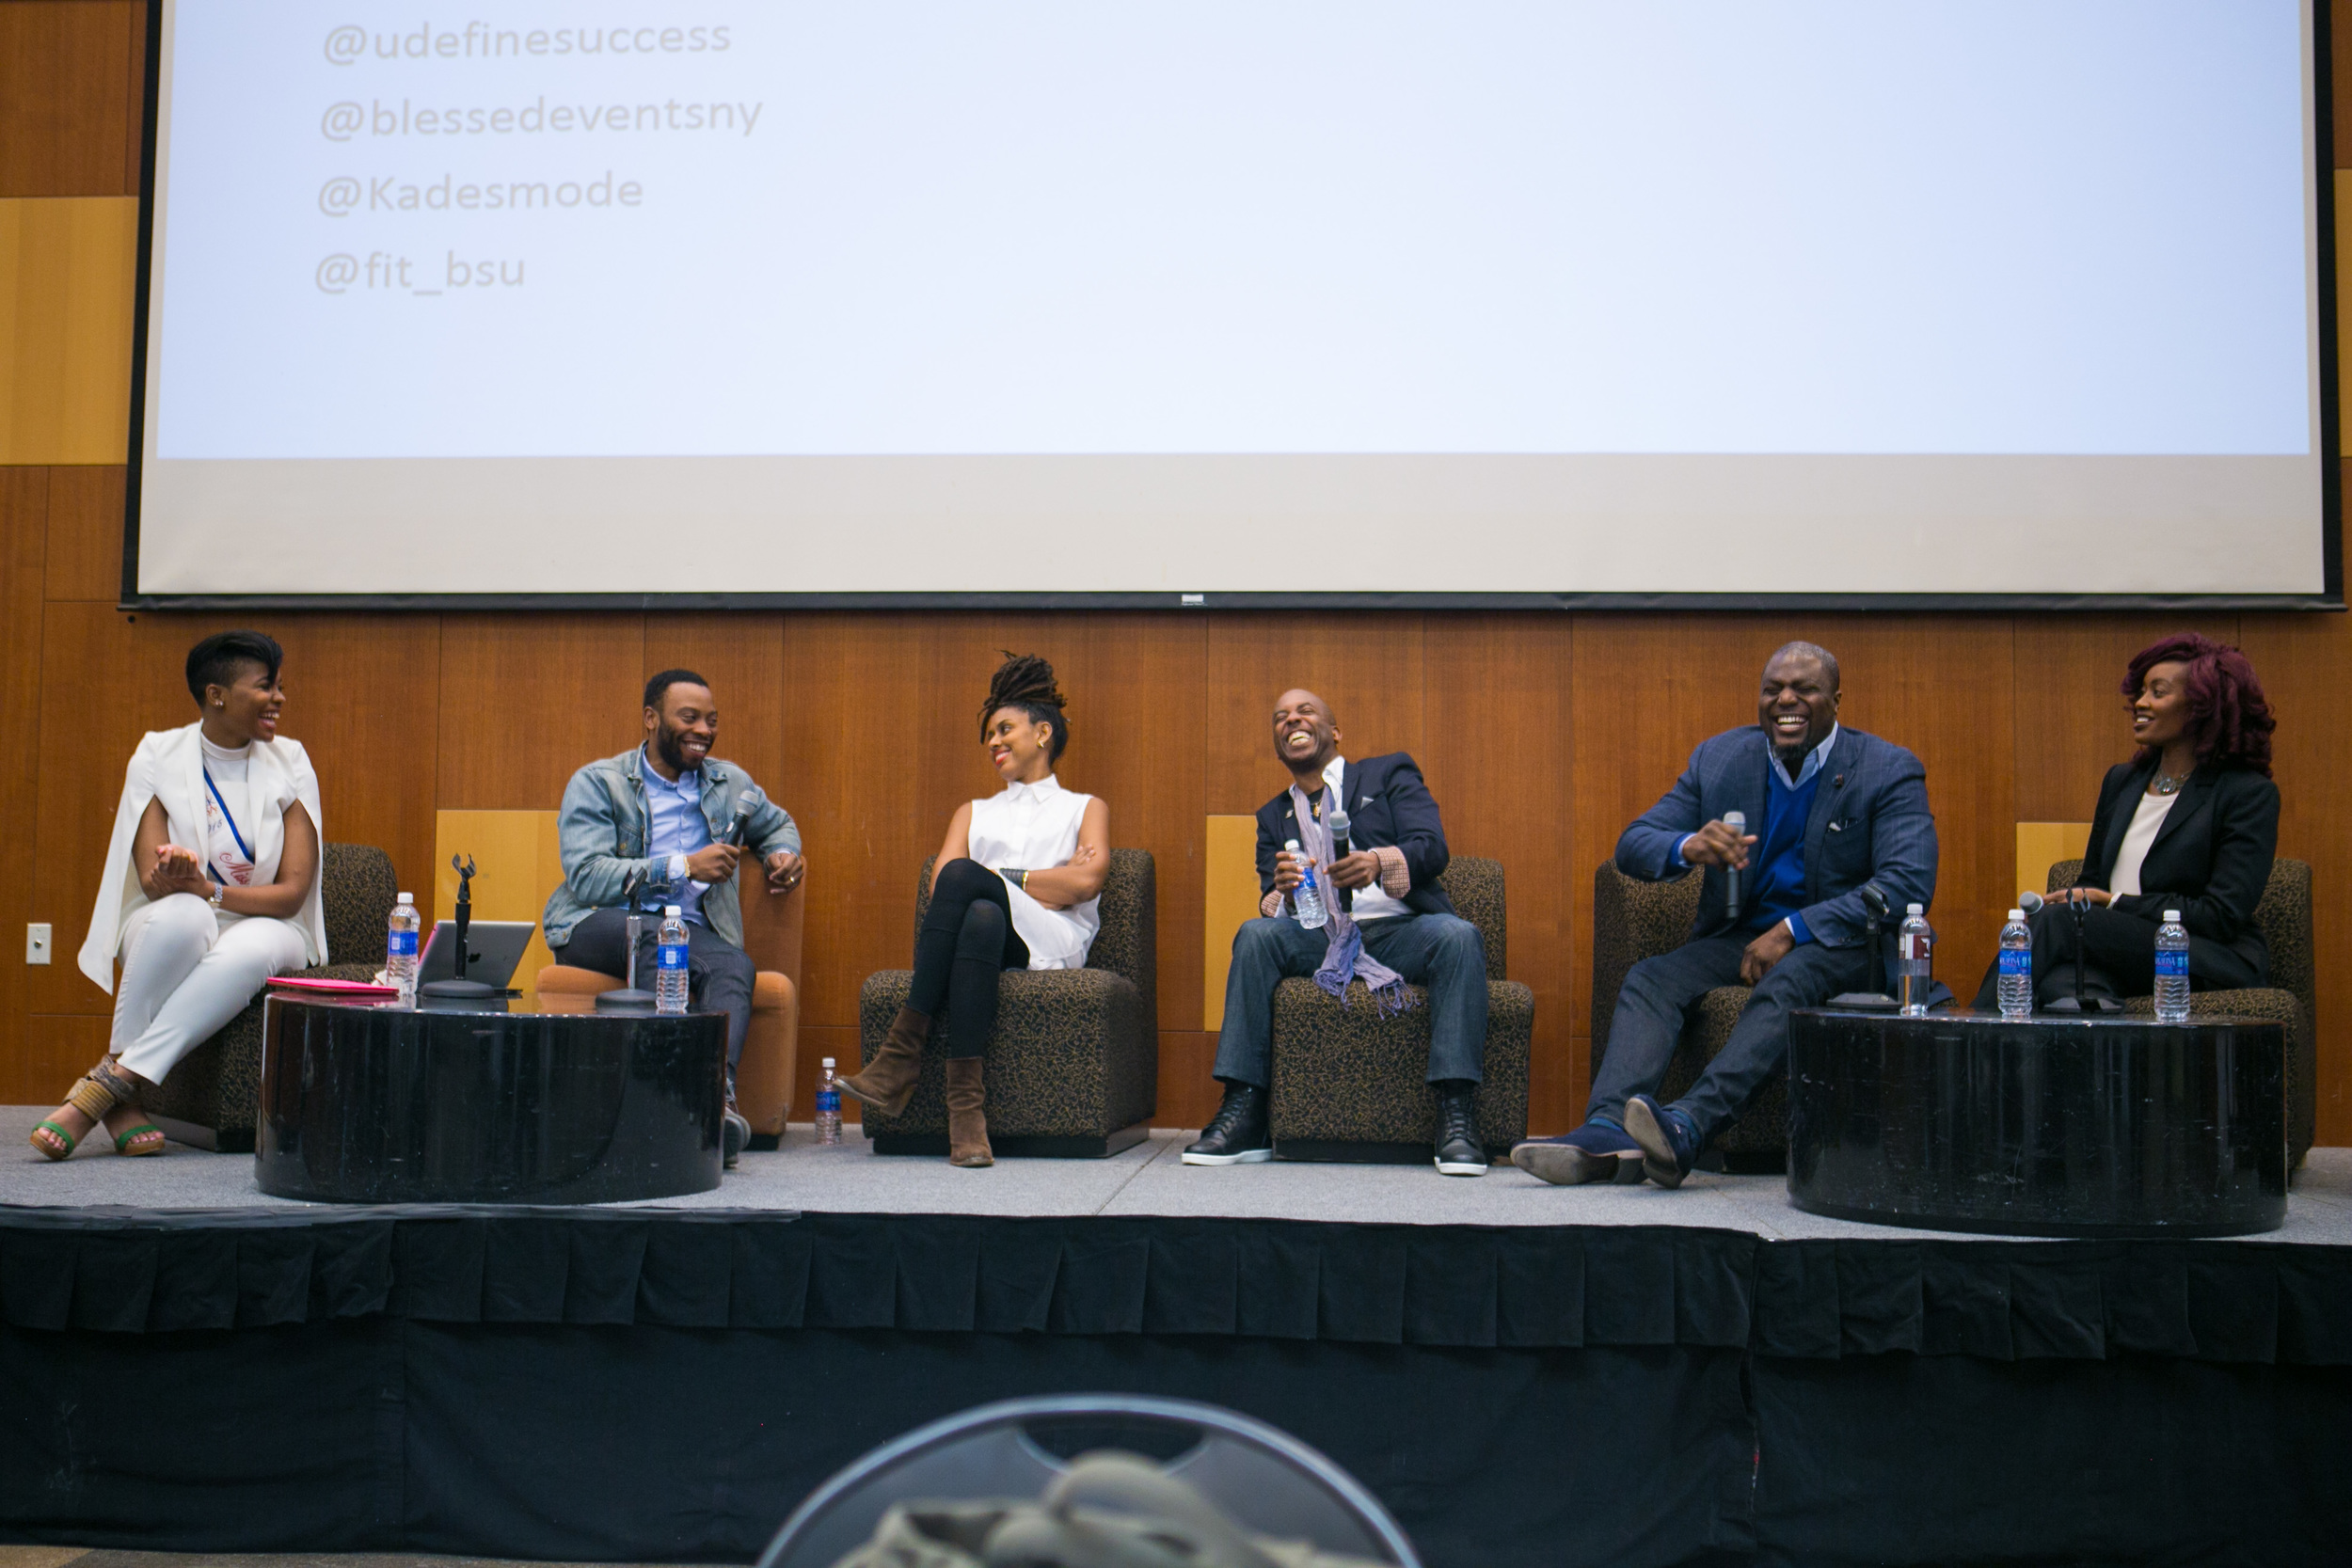 Left to Right: Moderator -Kade Henderson (Miss Black America New York), David Hamilton (Grey Advertising), Robert Norman (Planet Brooklyn Academy), Tony Forte (Silverspoon Foundation) and Jamila Johnson (Blessed Events).Source: Fashion Institute of Technology